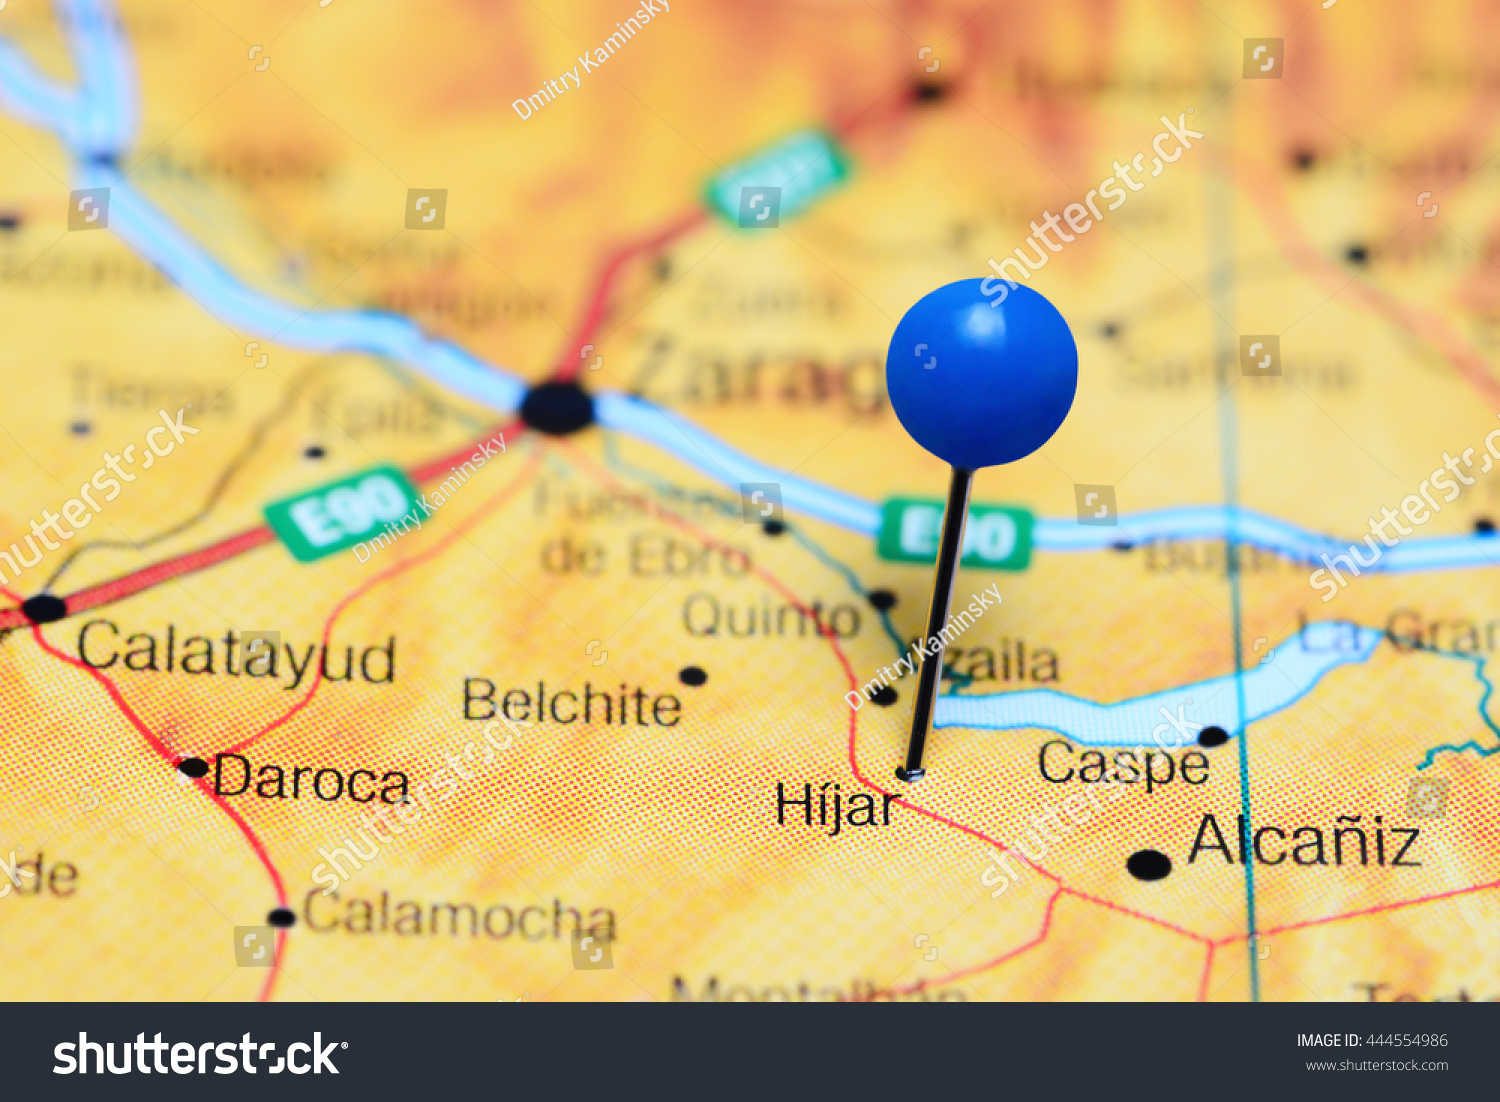 Calatayud Spain Map.Royalty Free Hijar Pinned On A Map Of Spain 444554986 Stock Photo